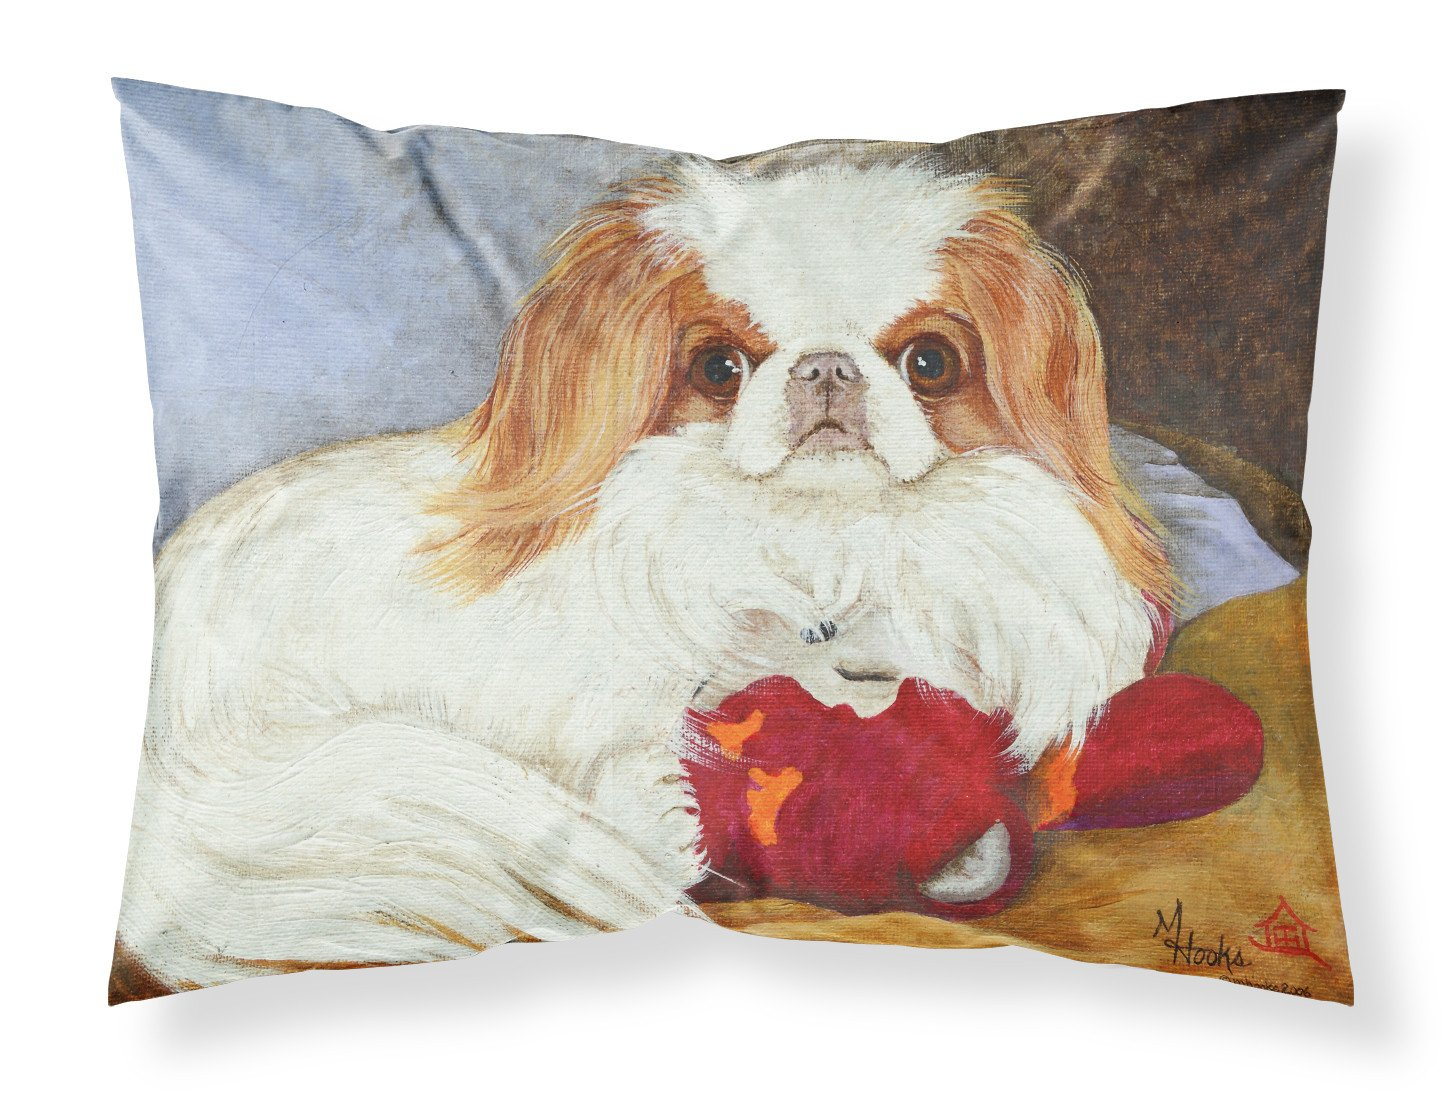 Japanese Chin Pink Gorilla Fabric Standard Pillowcase MH1049PILLOWCASE by Caroline's Treasures